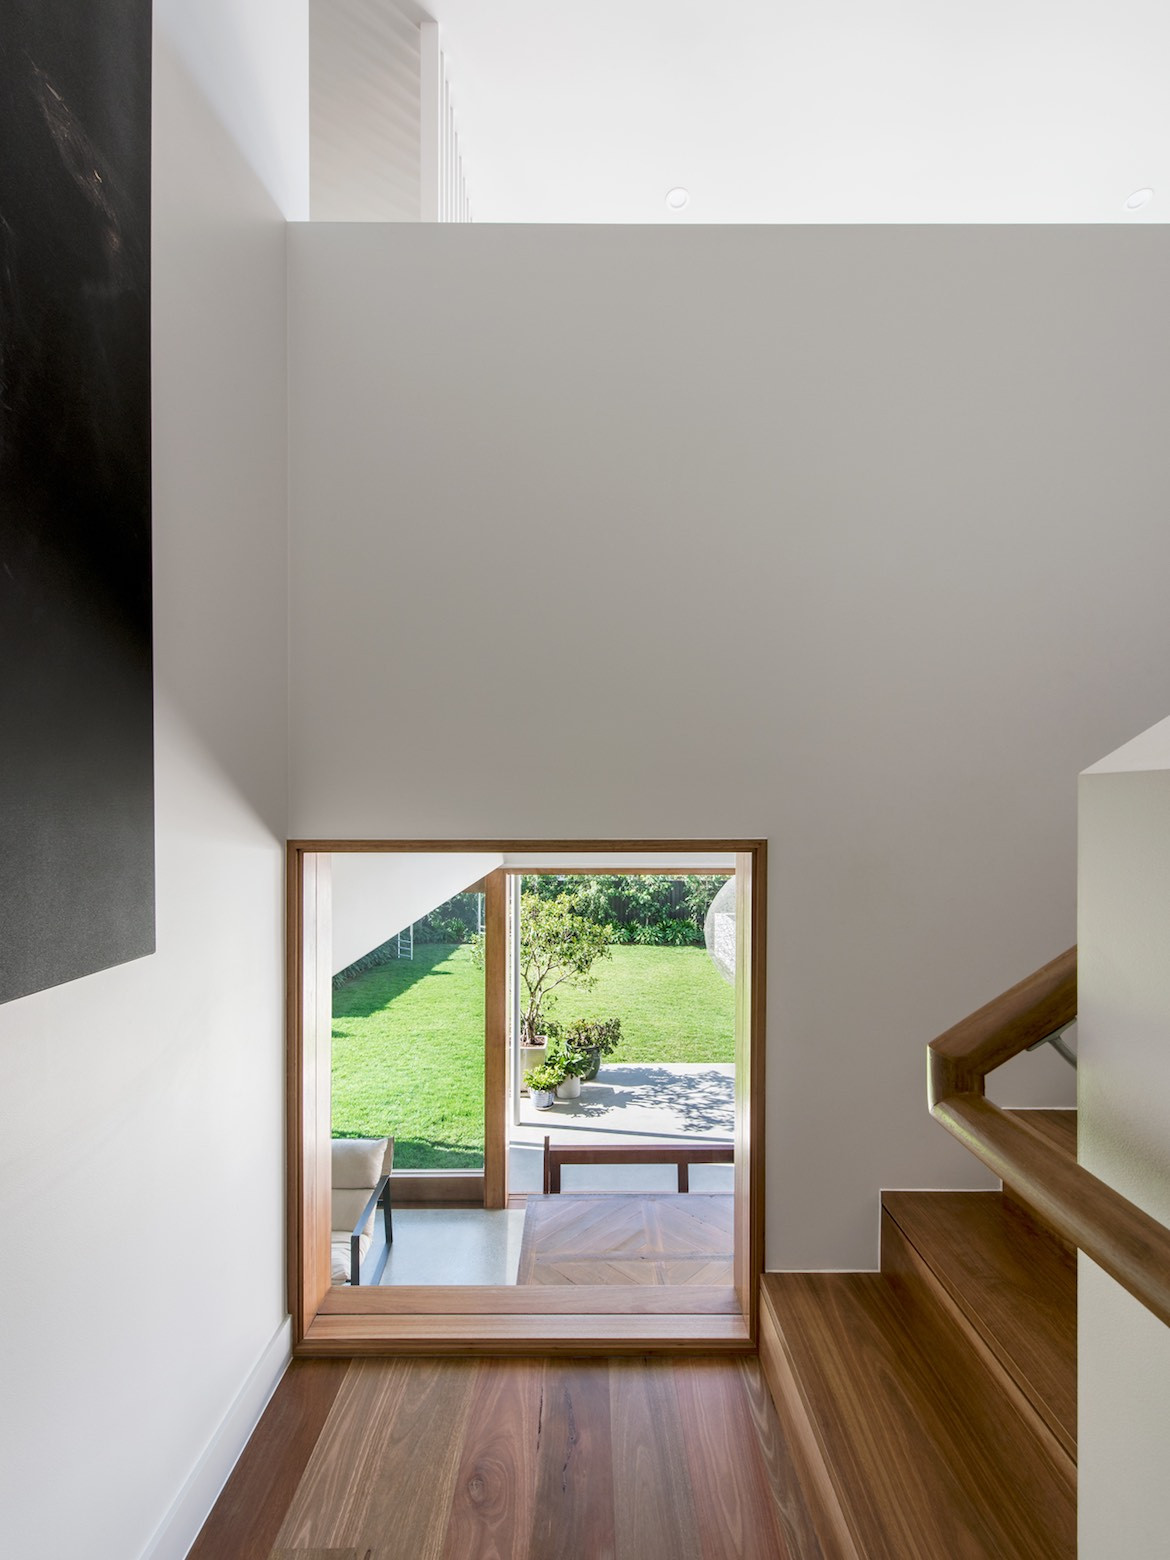 A platform on the stairs of the Queenslander is used to feature the clients' artwork.